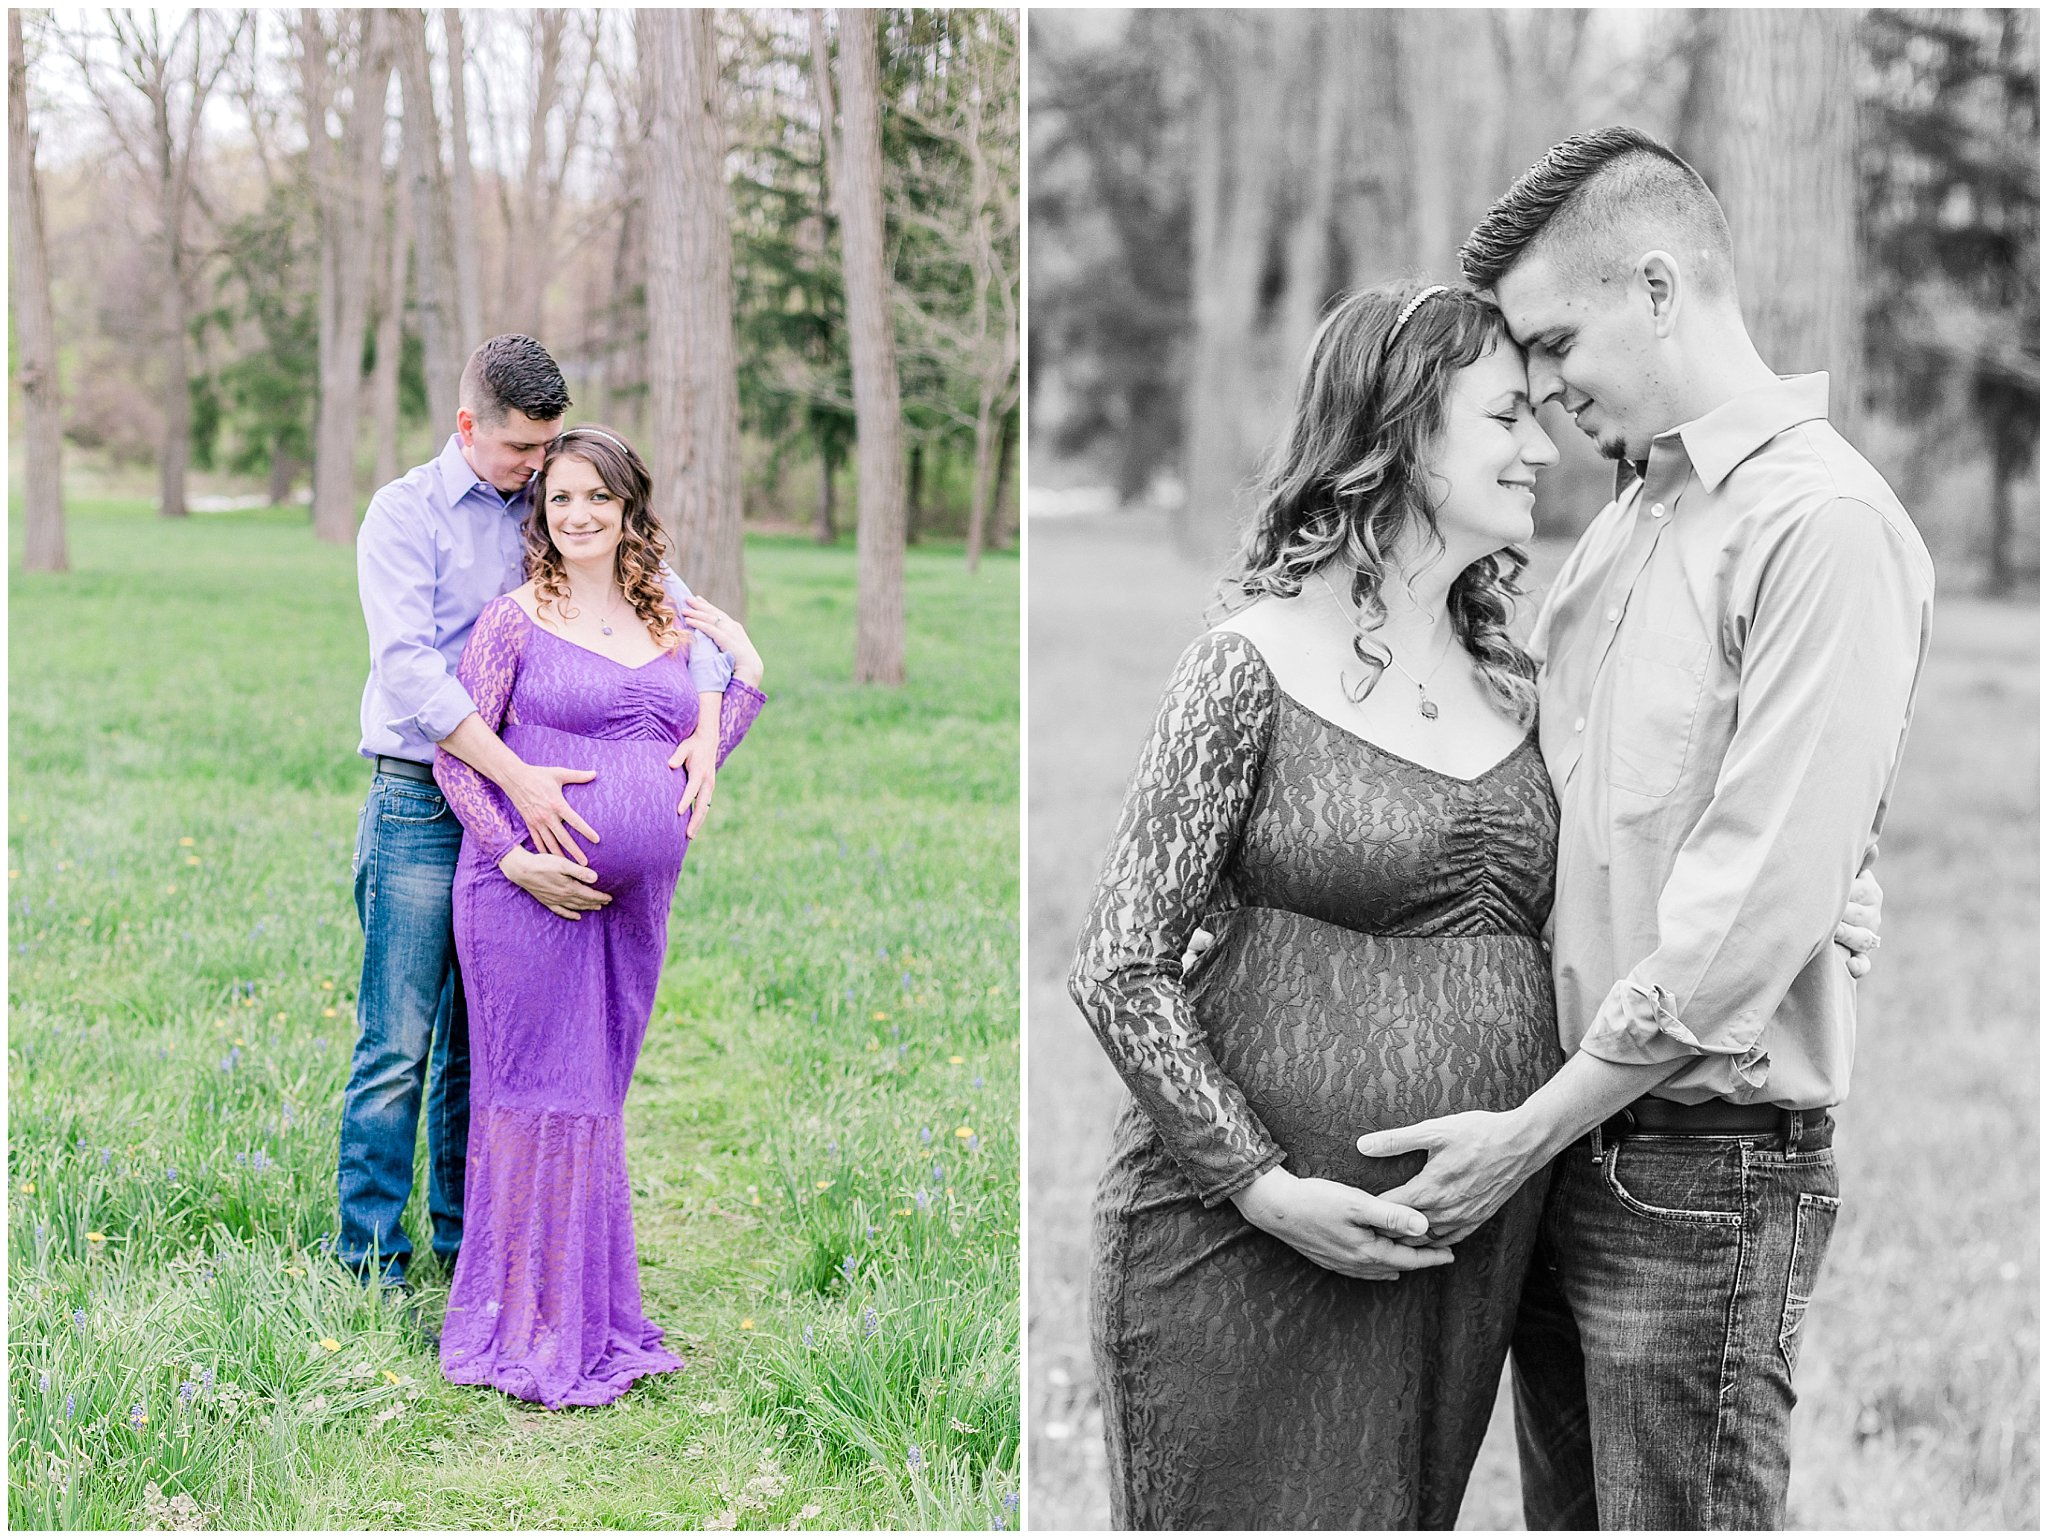 alburtis lockridge blue bonnet purple inspried maternity and family session pennsylvania wedding and lifestyle photographer (15).jpg